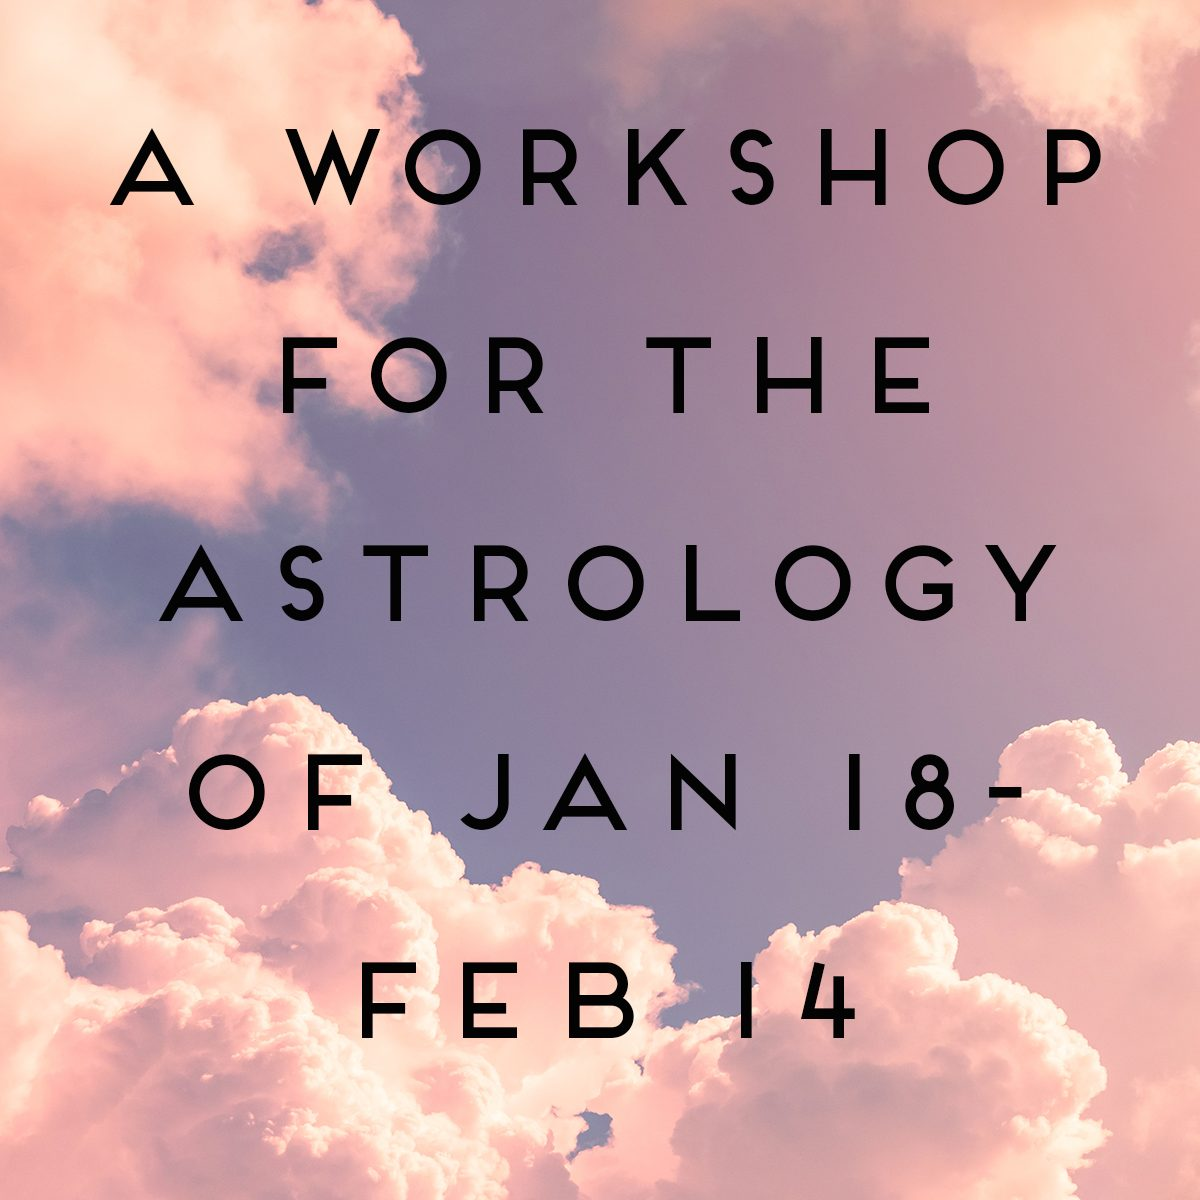 Jan18-Feb14 Workshop